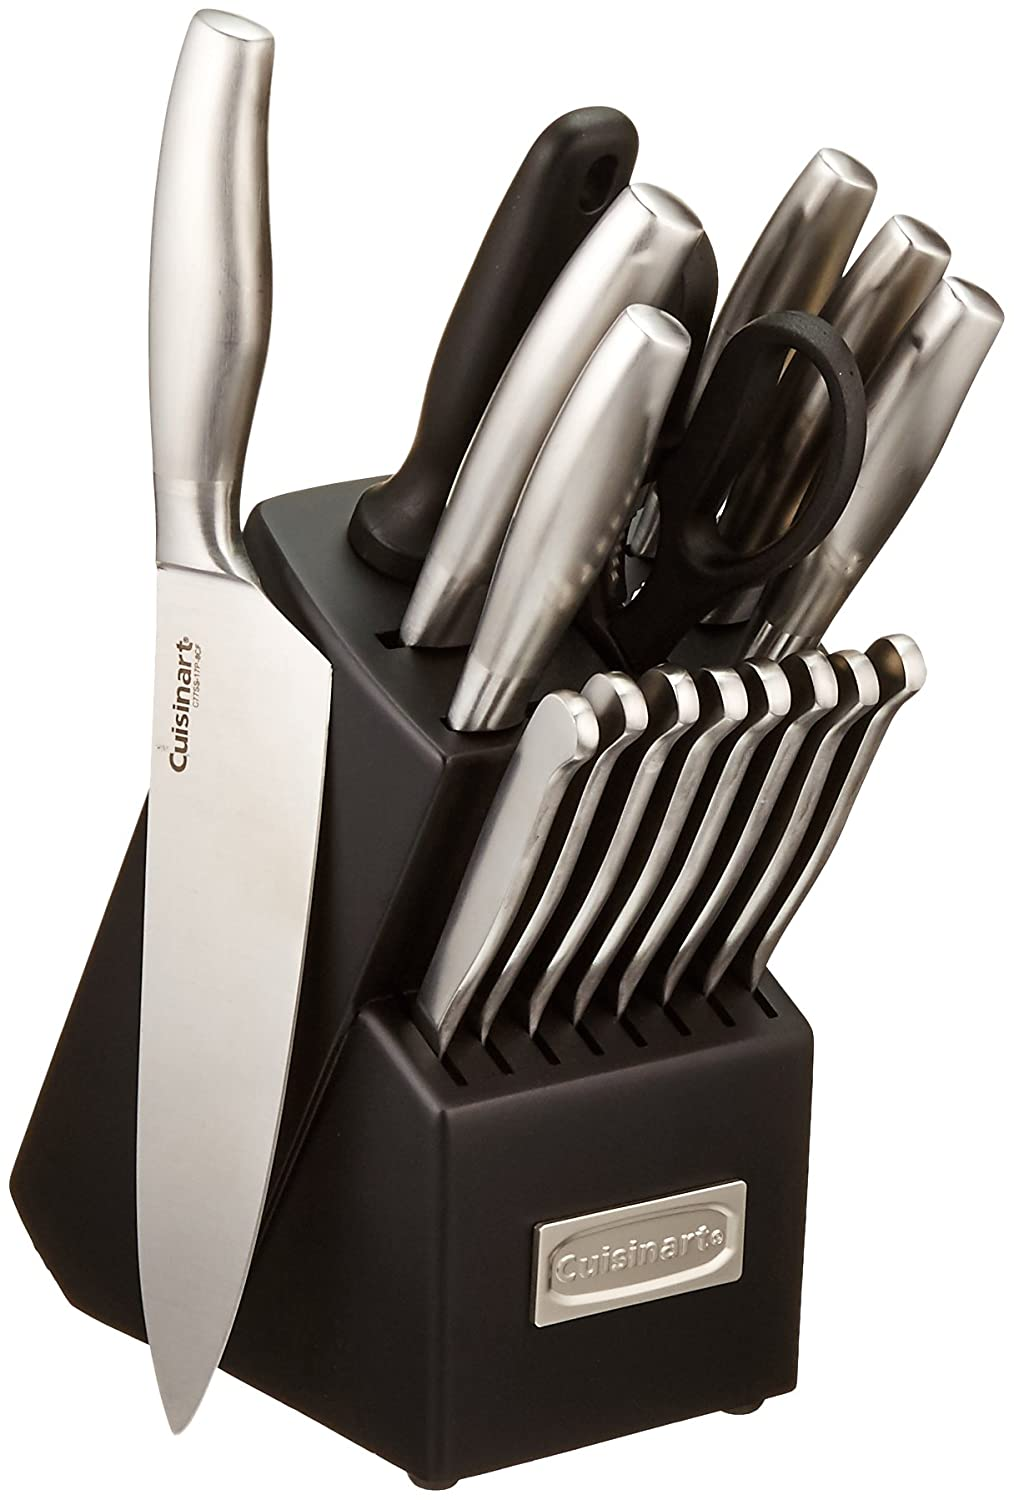 Cuisinart C77SS-17P 17-Piece Artiste Collection Cutlery Knife Block Set, Stainless Steel